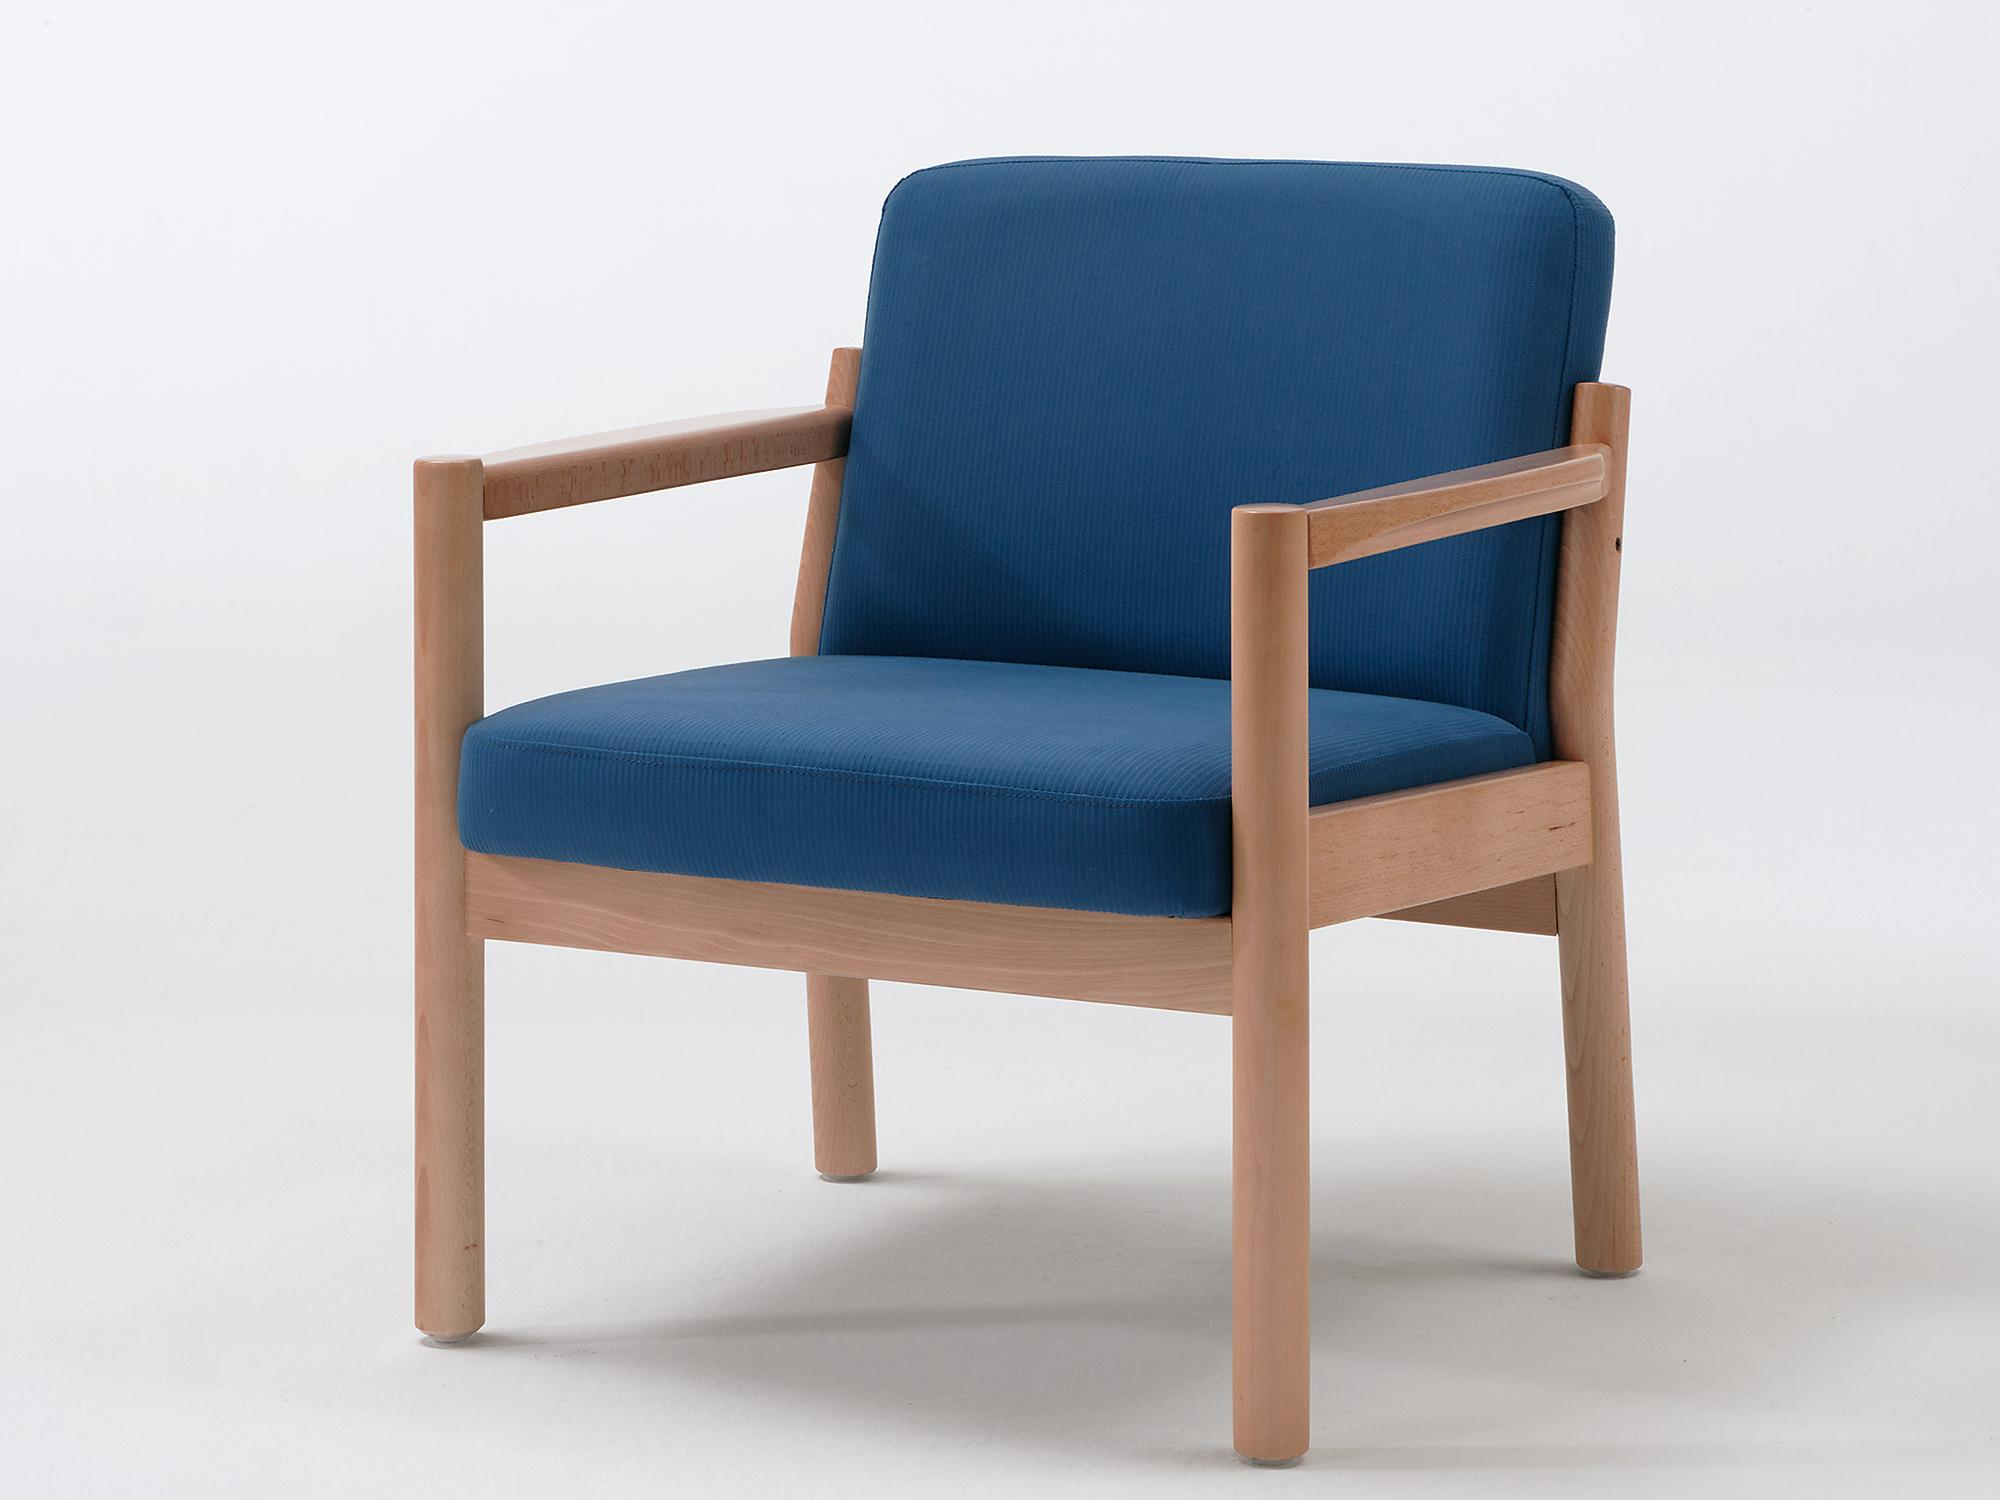 The Primo model as an easy chair with armrests